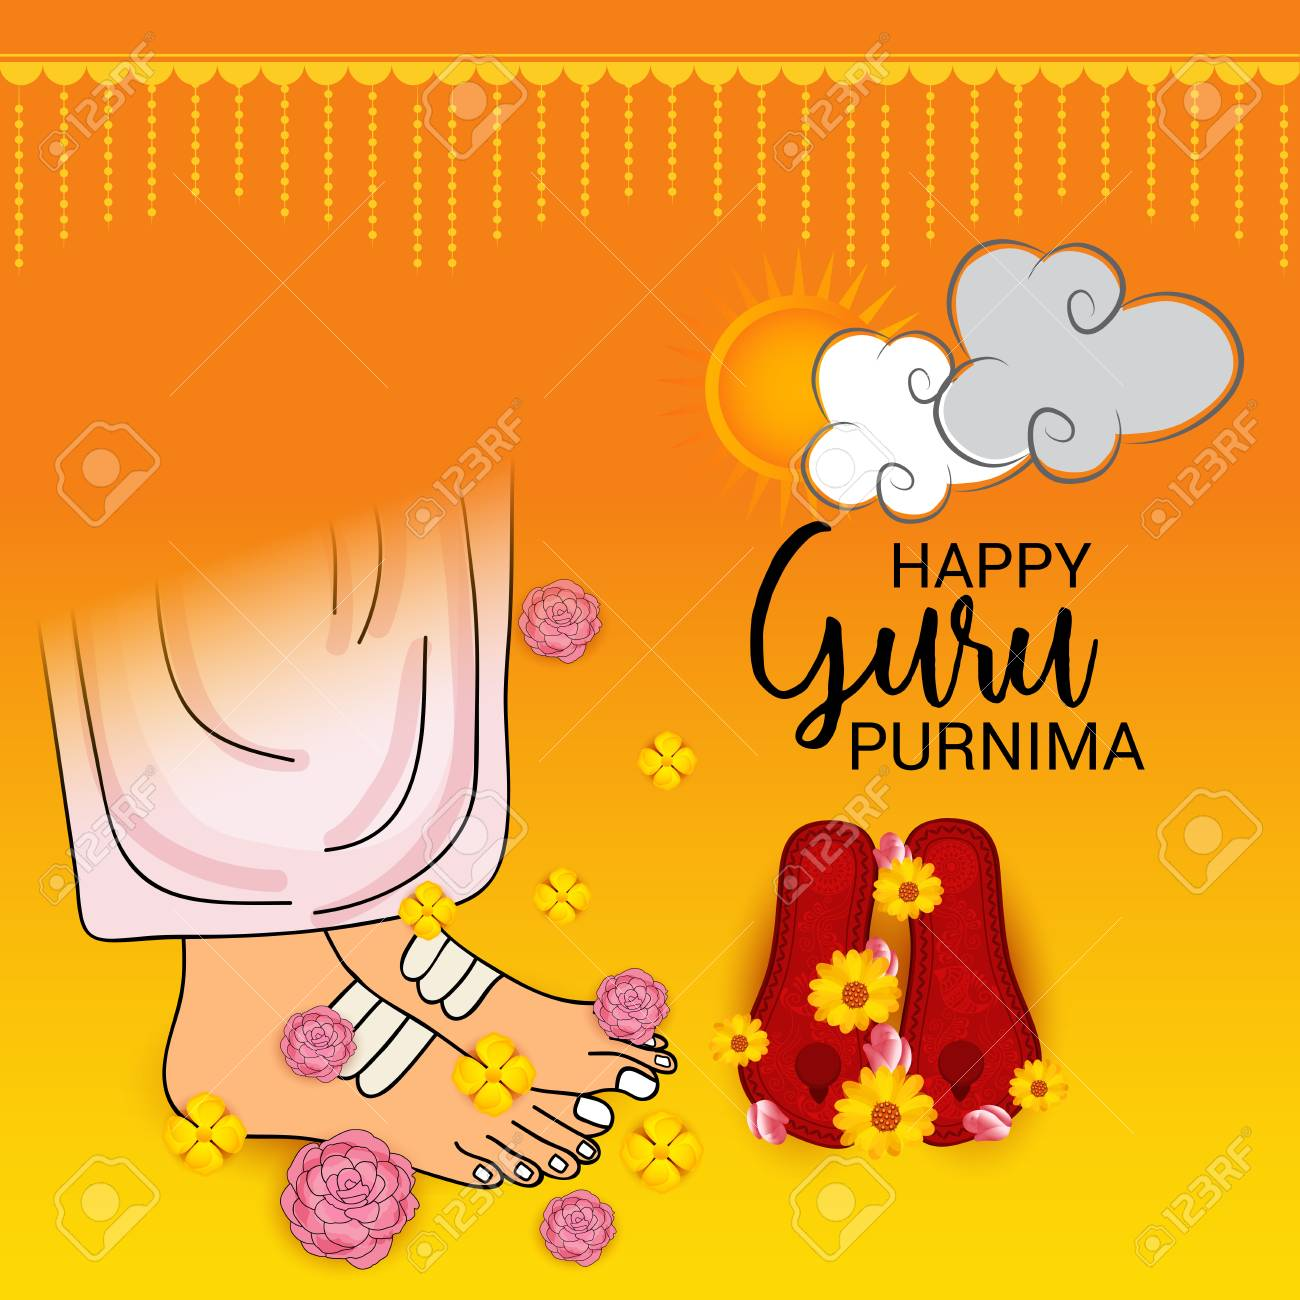 Happy Guru Purnima..